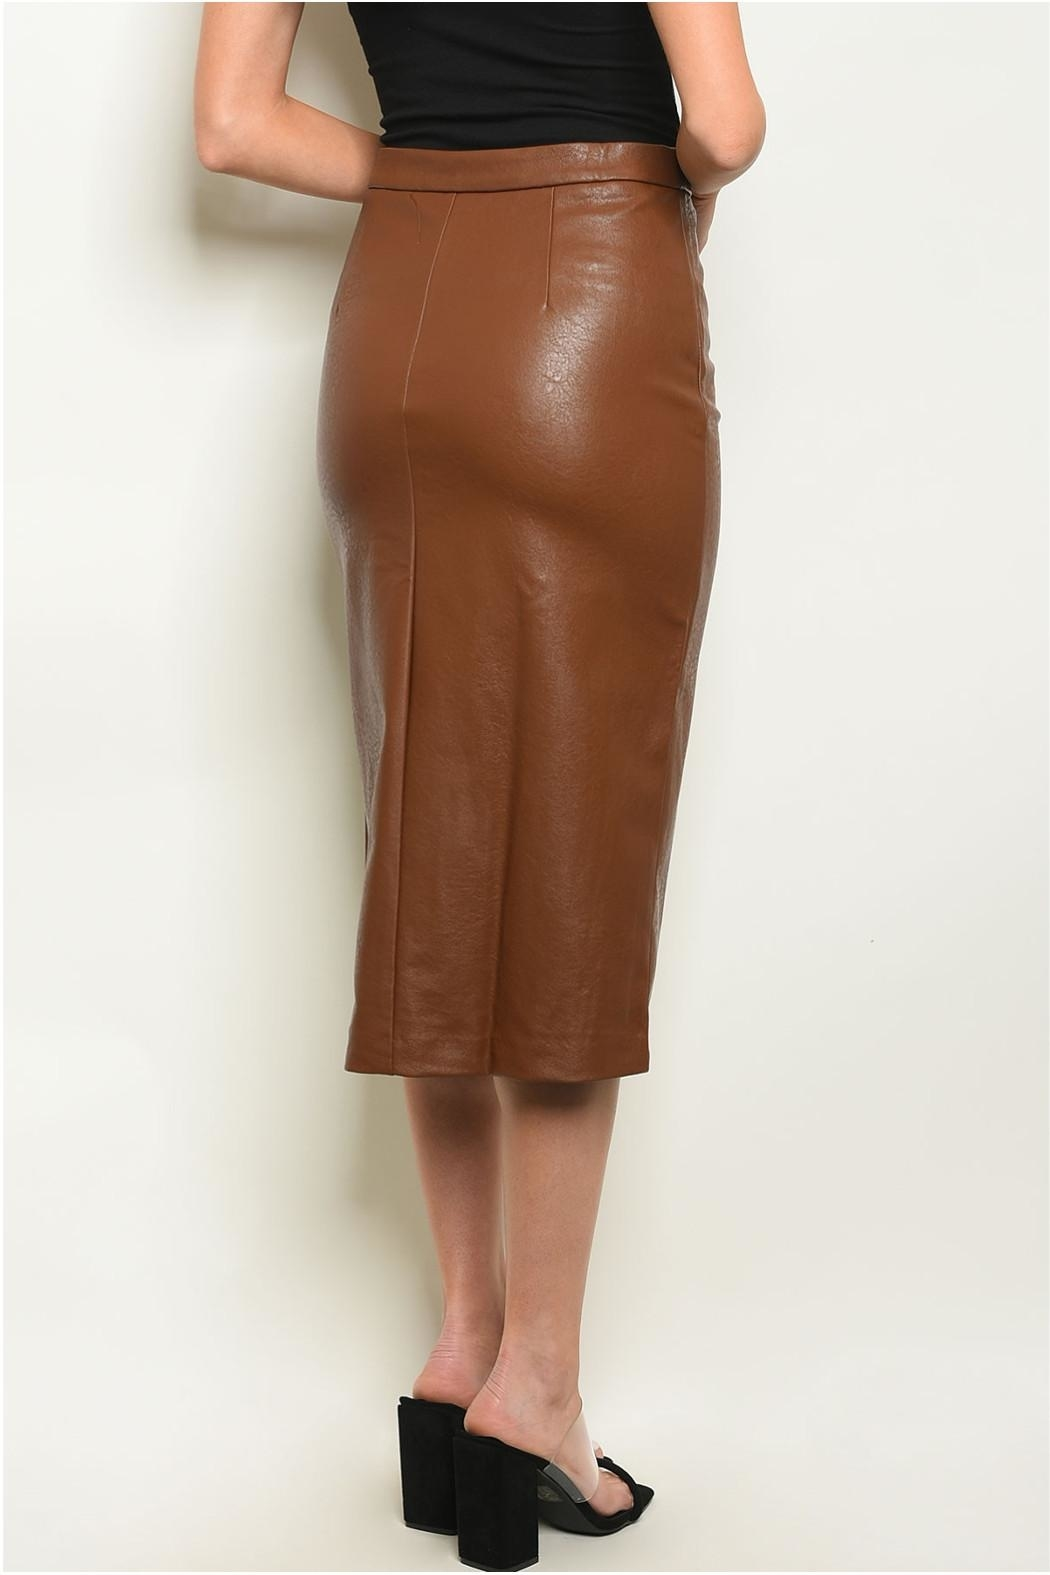 Sweet Journey Brown Leather Skirt - Front Full Image